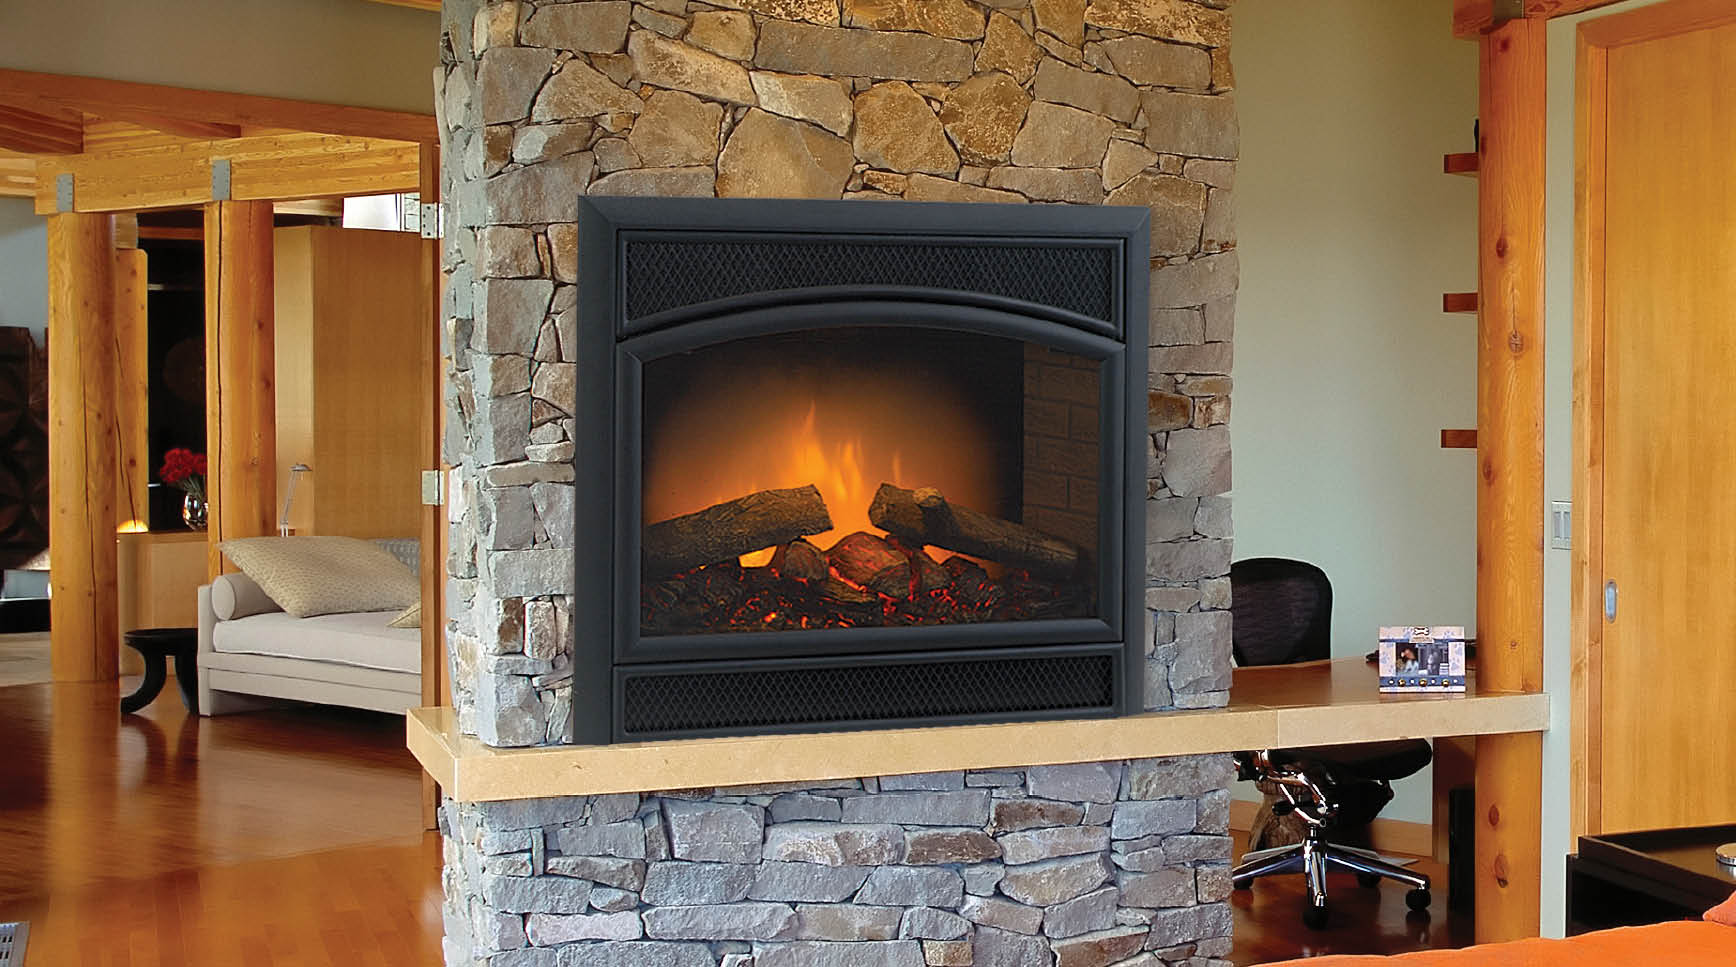 Two Sided Fireplace Warms Spacious Interior Effortless With Eclectic Plan Homesfeed